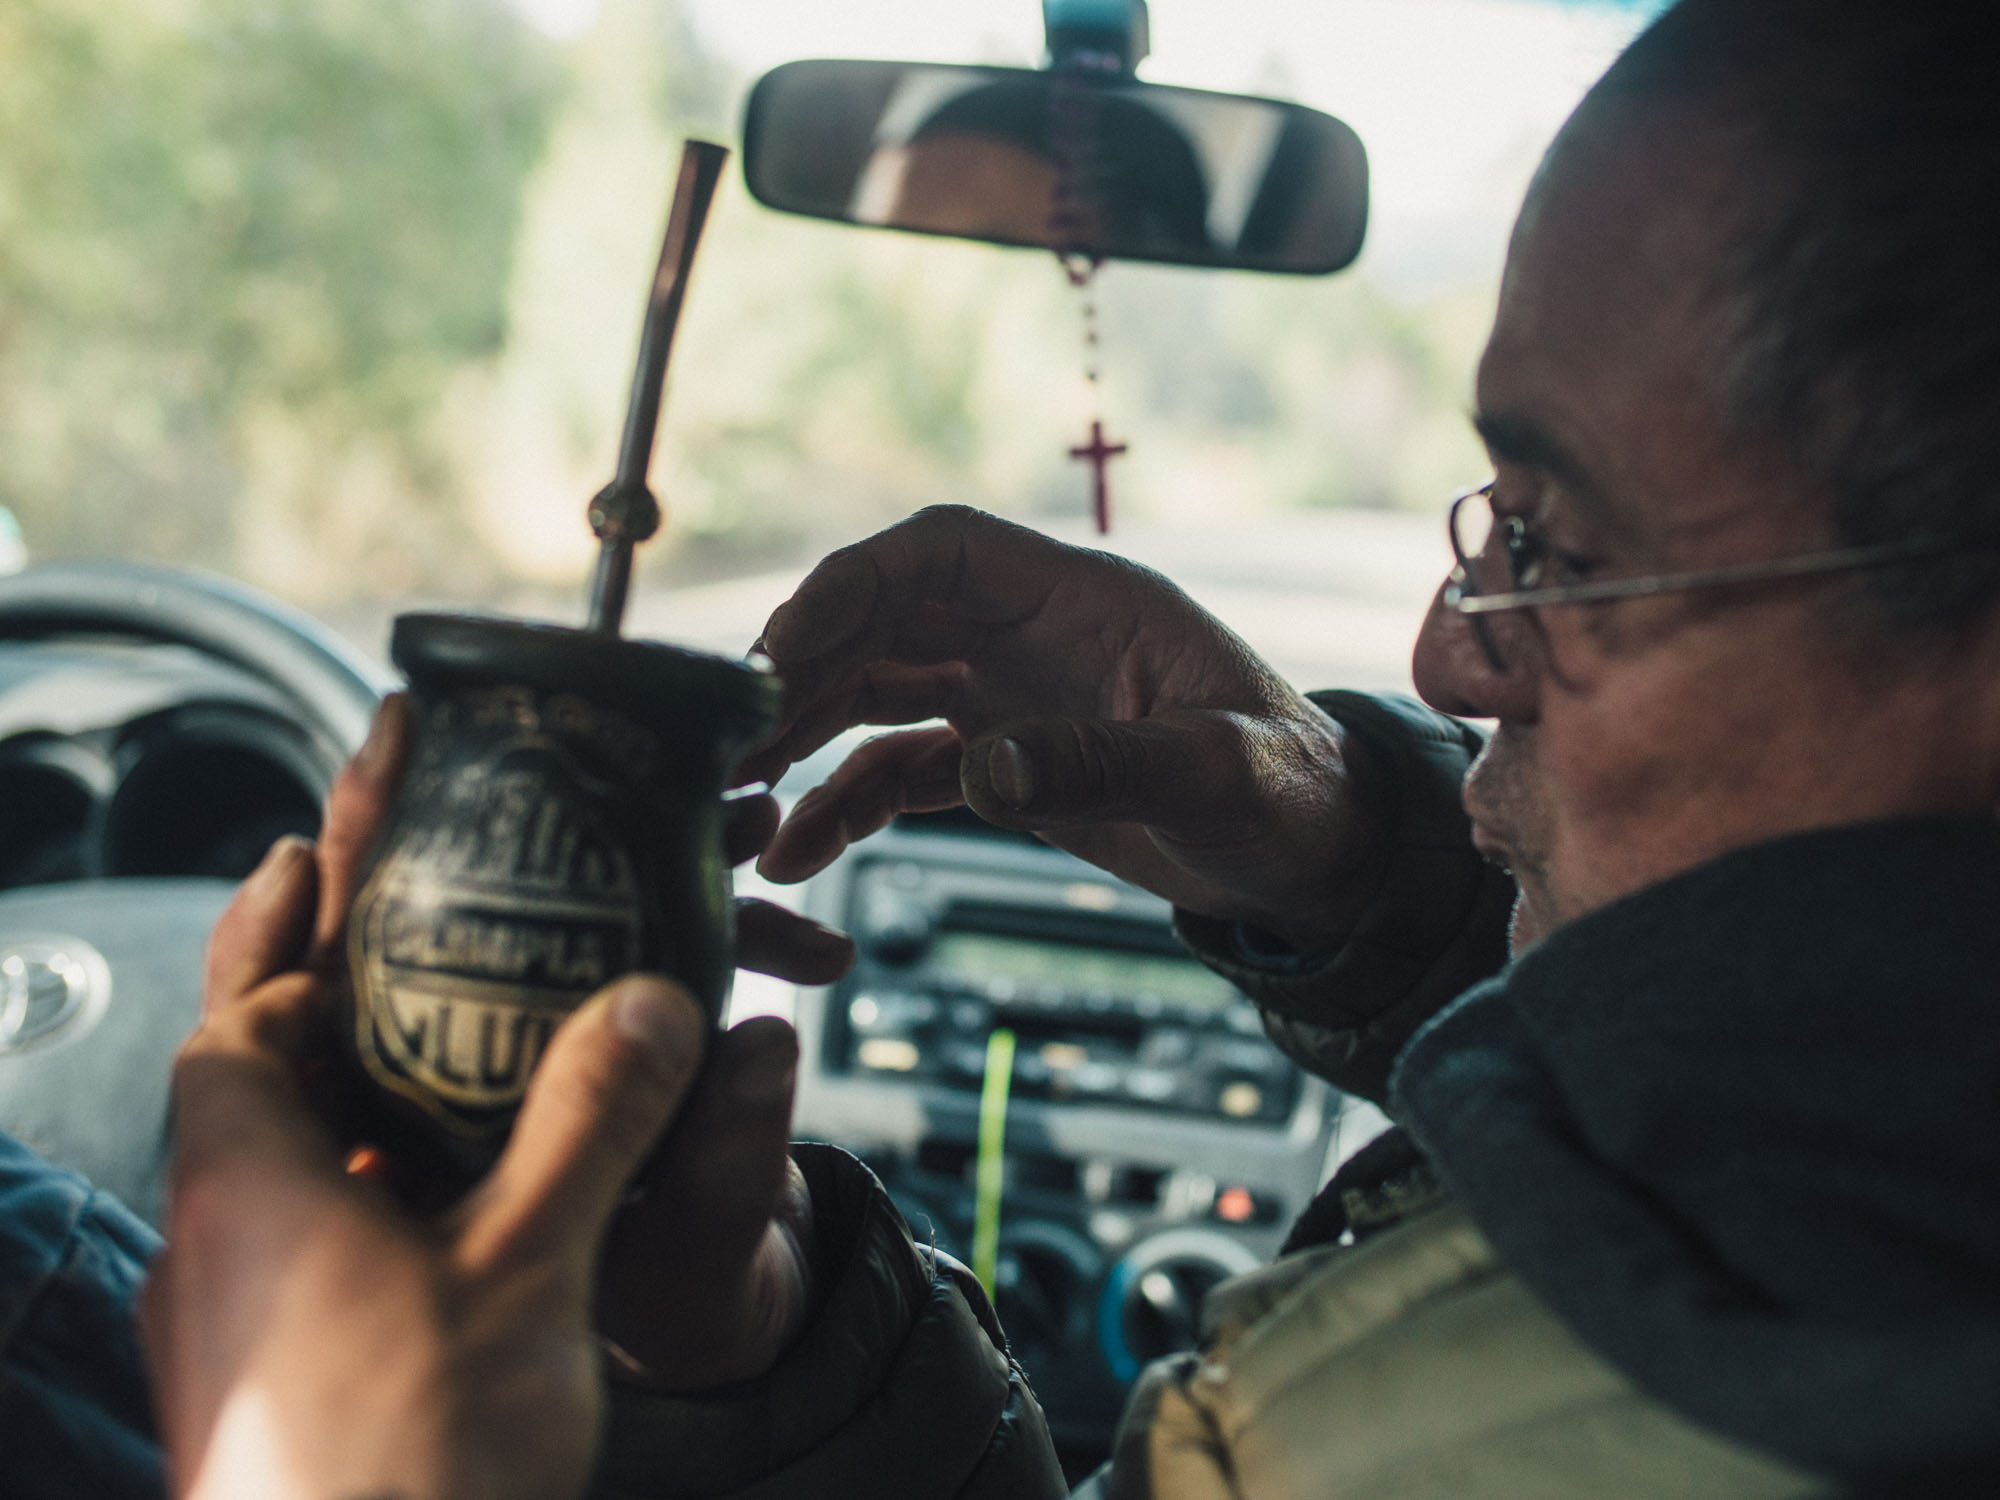 Warming up in a car with  mate,  a traditional Argentinian tea that gets shared around in a wooden cup.